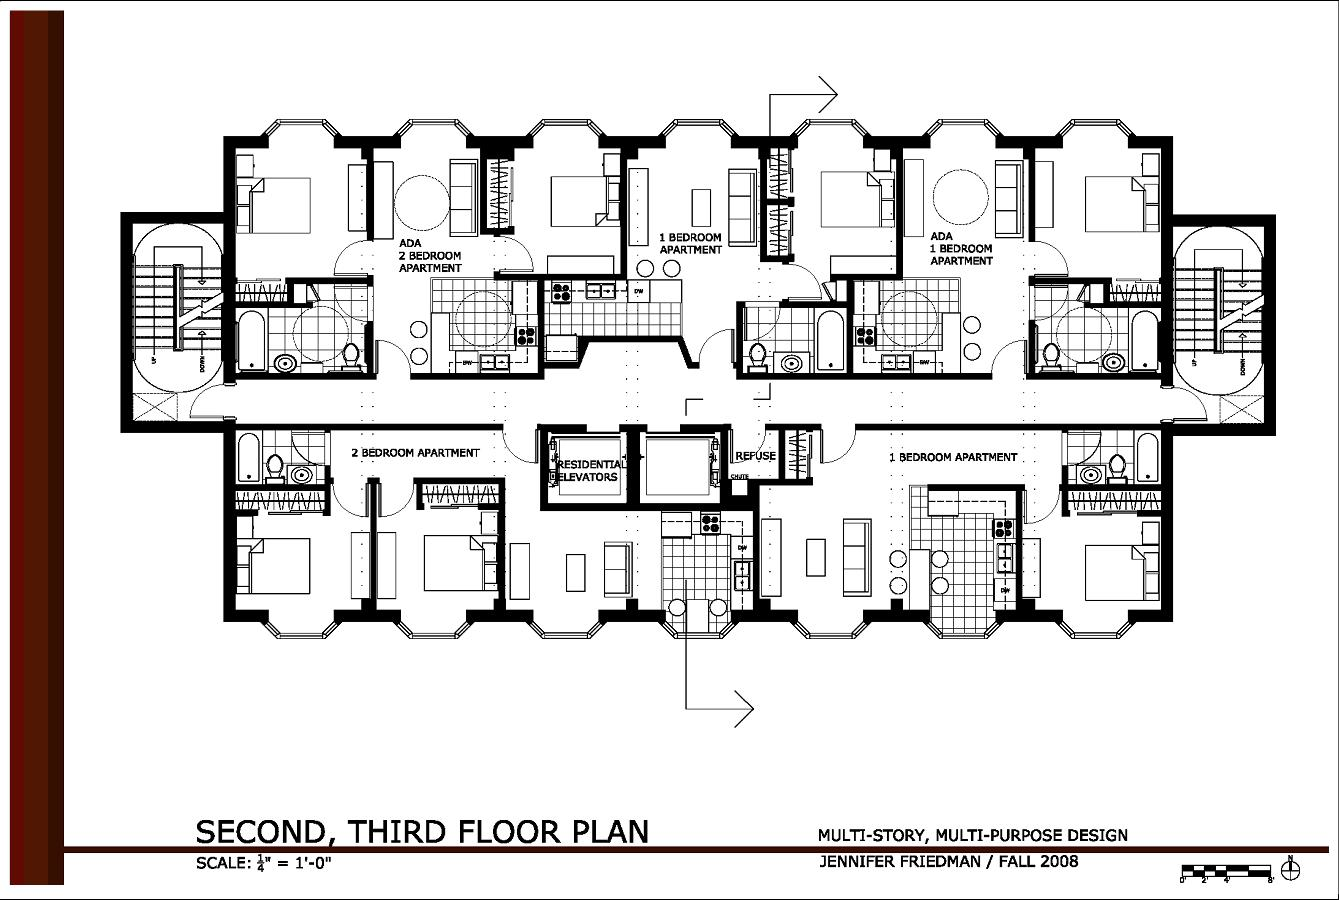 Multi story multi purpose design by jennifer friedman at for Small commercial building plans